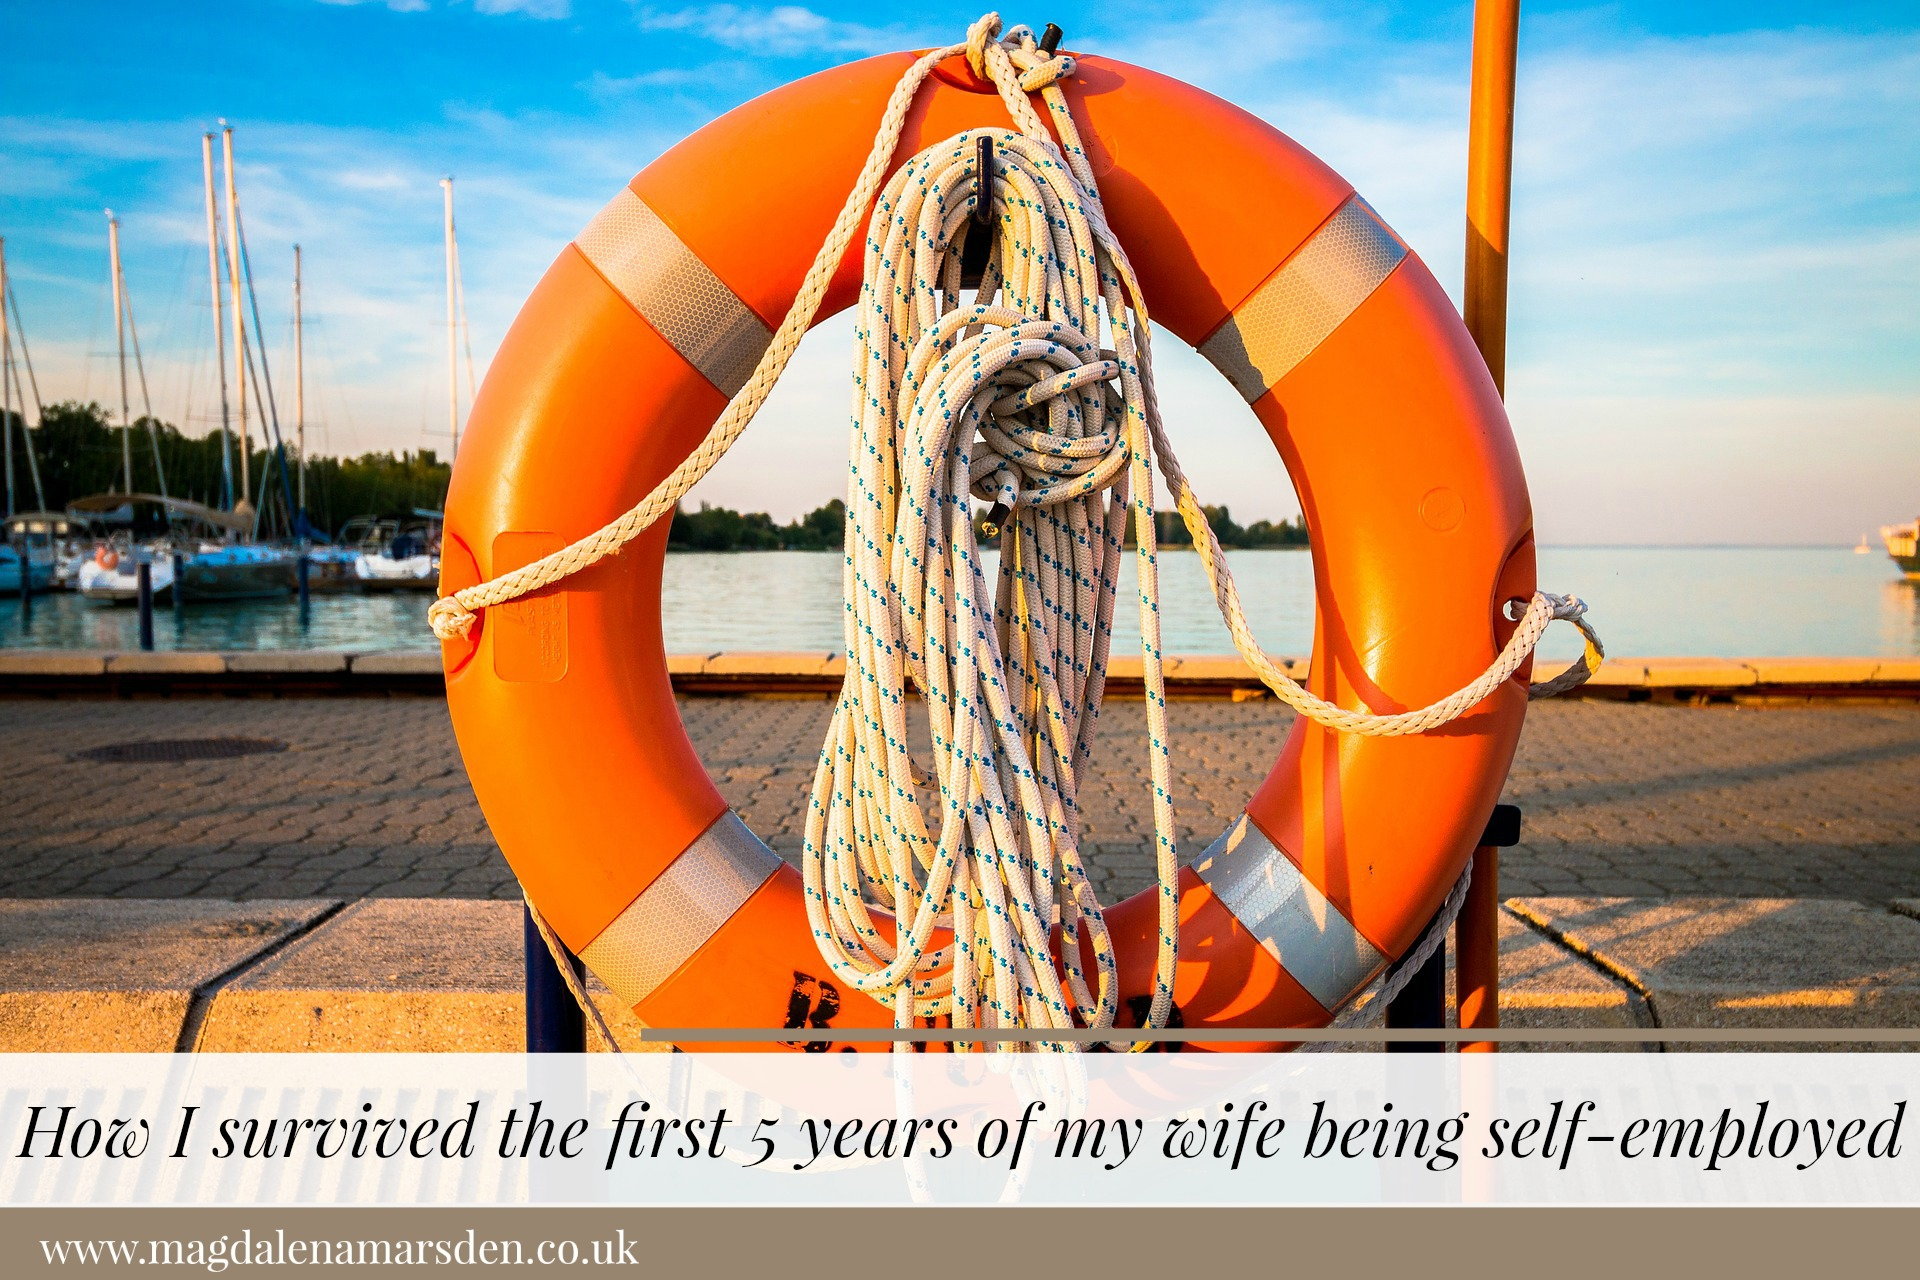 How I survived the first 5 years of my wife being self-employed